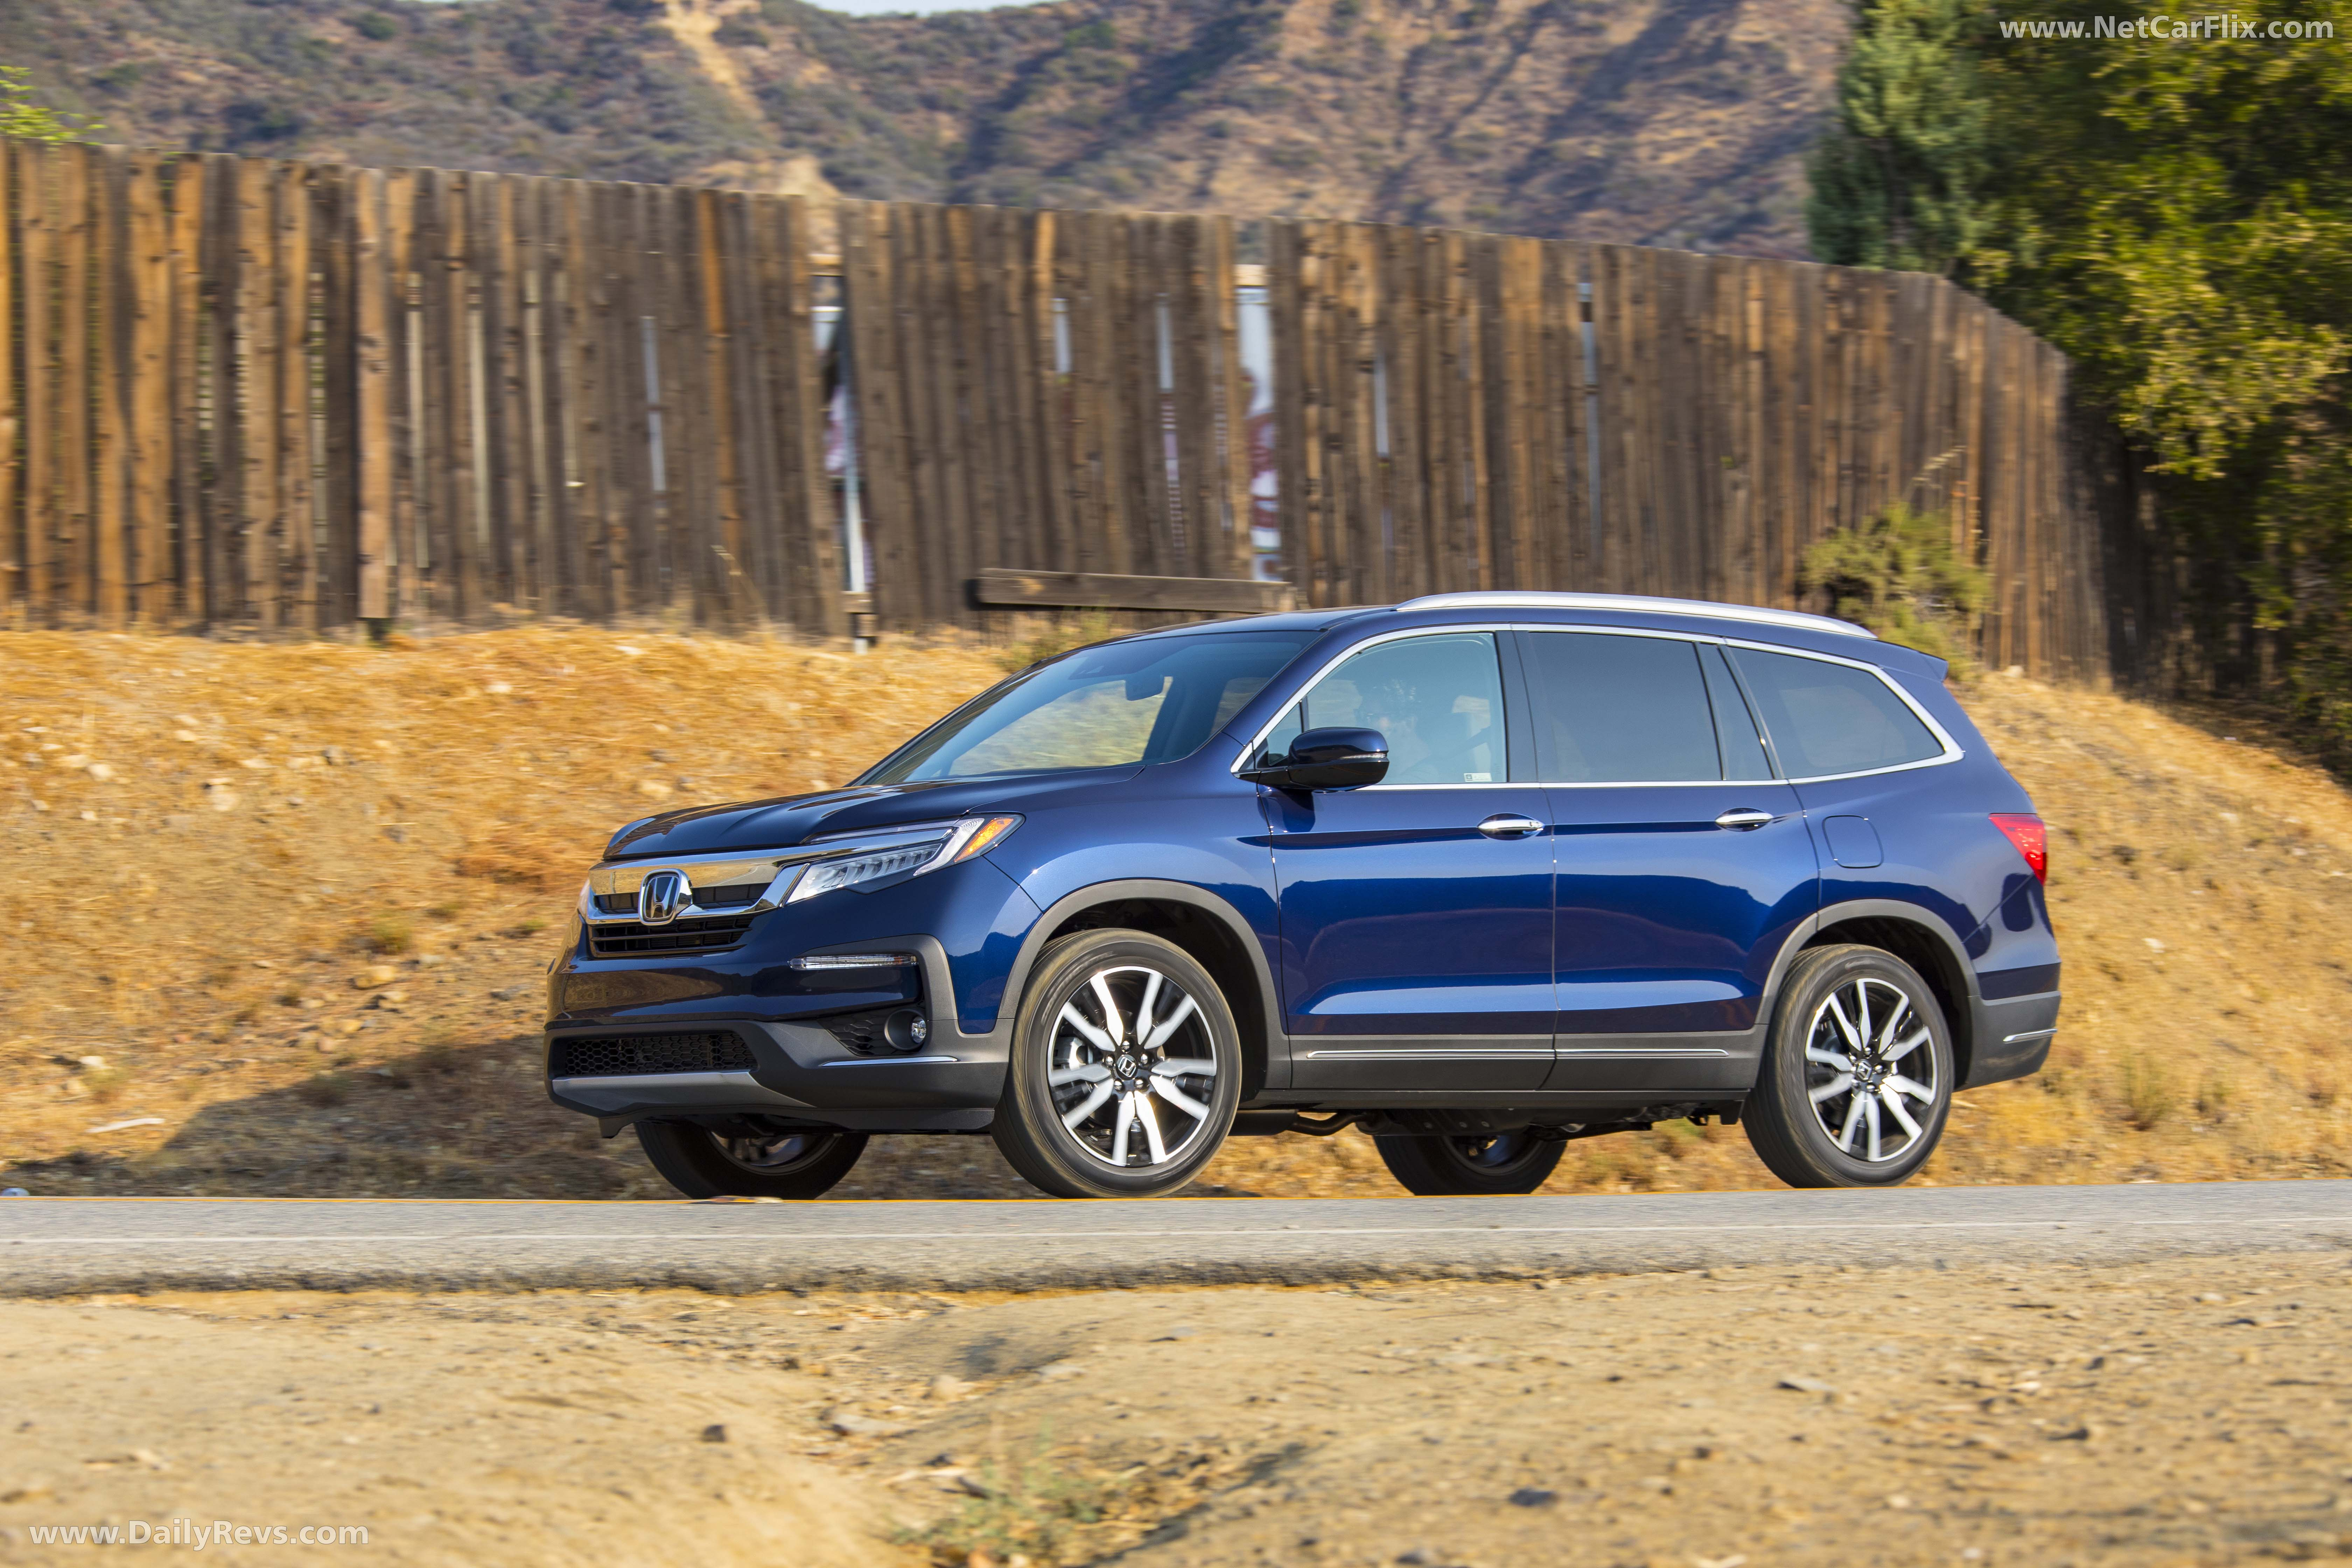 2019 Honda Pilot - HD images, Specs, information and Videos - Dailyrevs